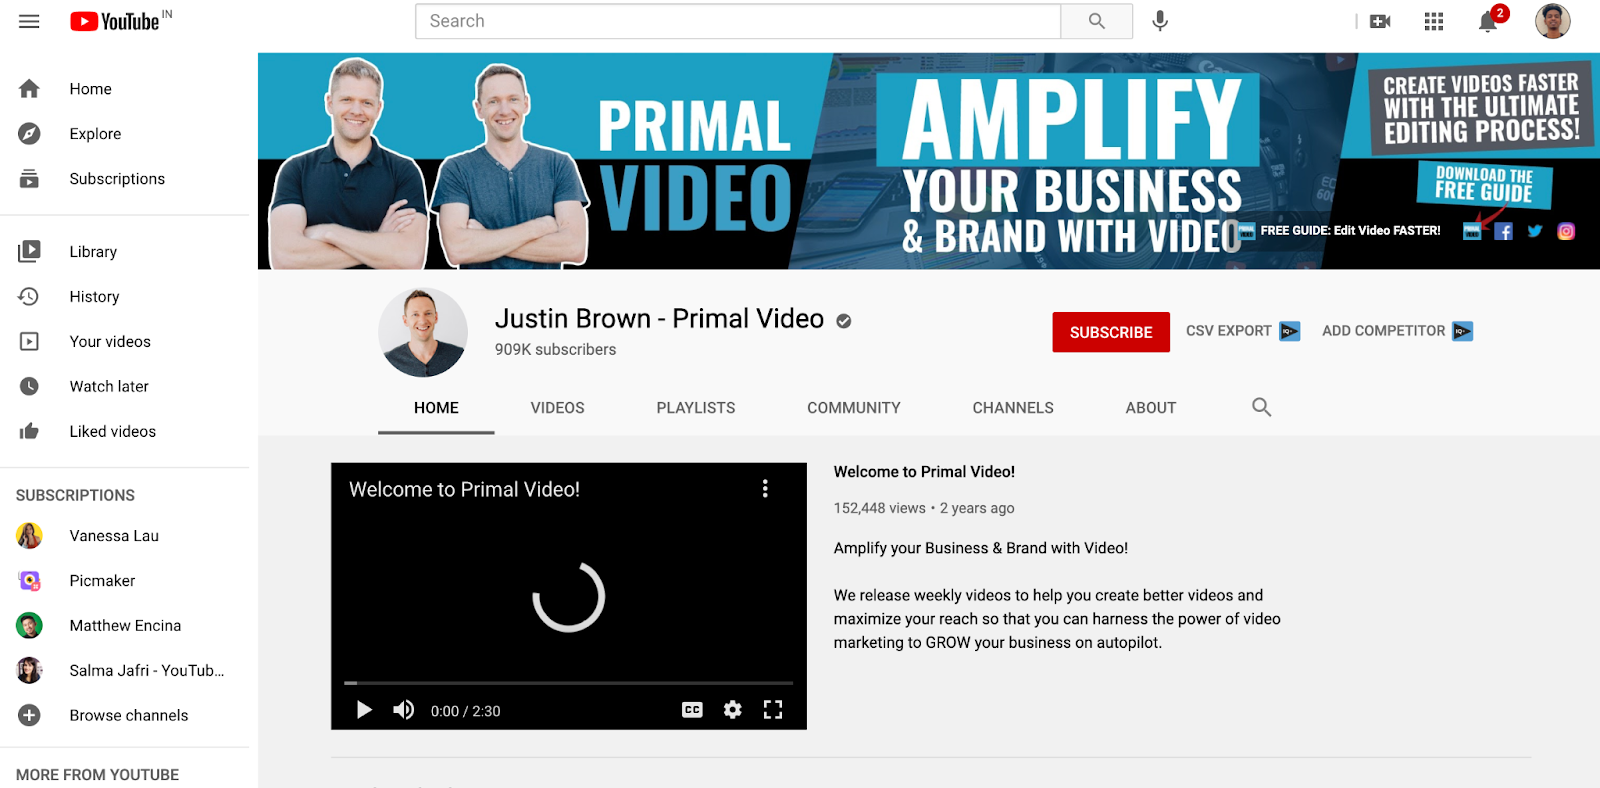 Picmaker-YouTube-Channel-Example-Primal-Video-Justin-Brown